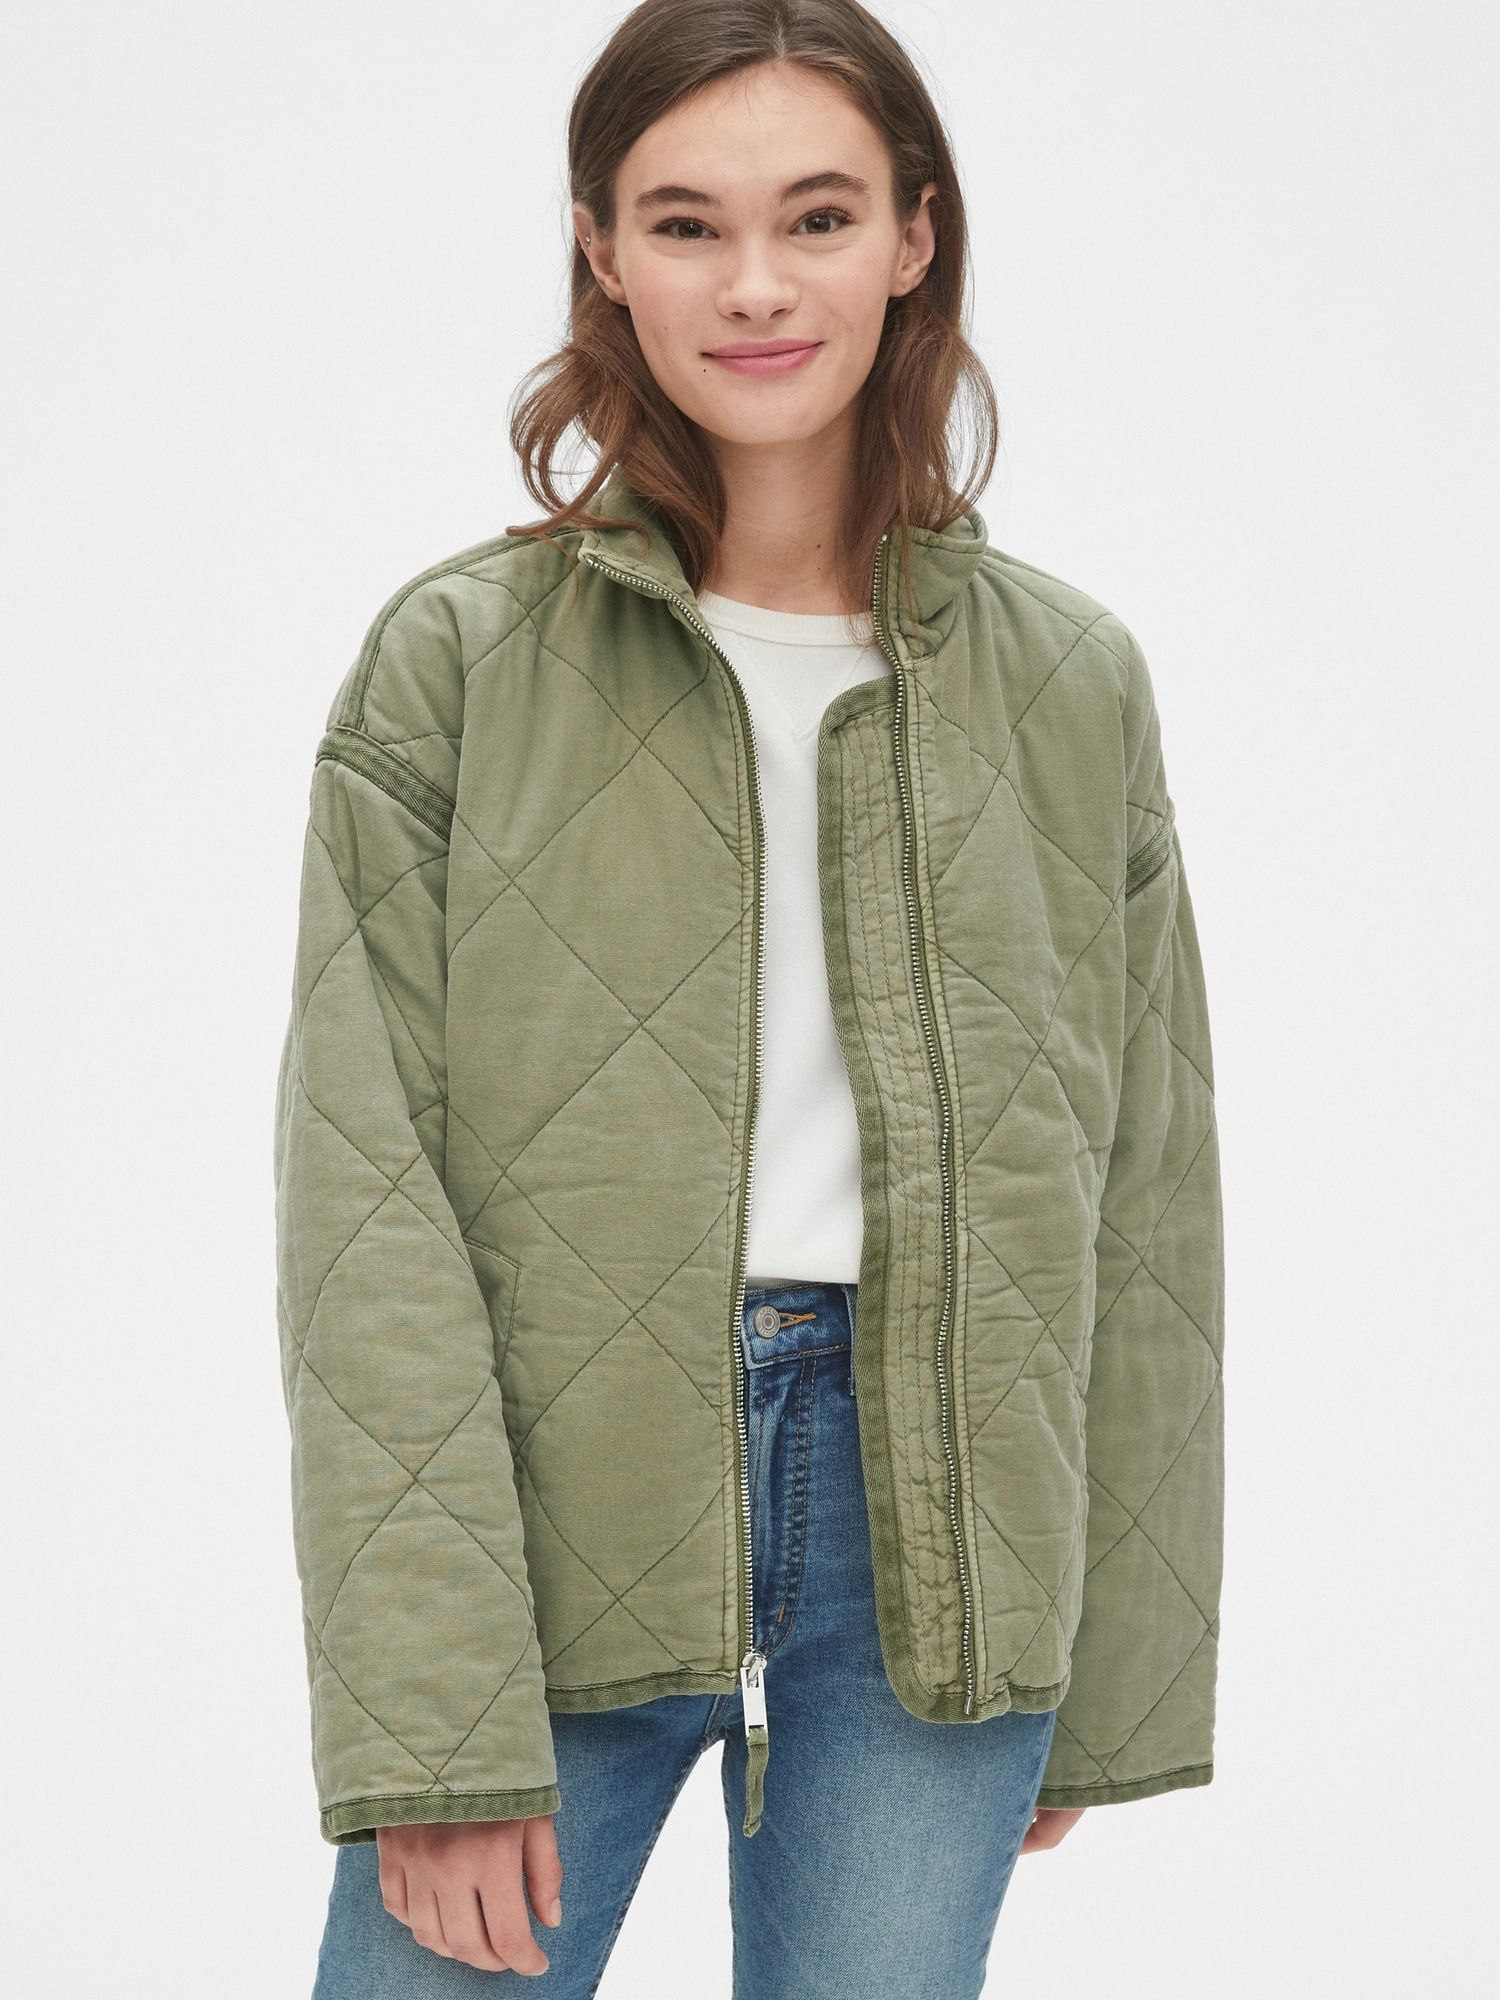 Quilted Jacket Gap Coats Jackets Women Quilted Jacket Jackets [ 2000 x 1500 Pixel ]